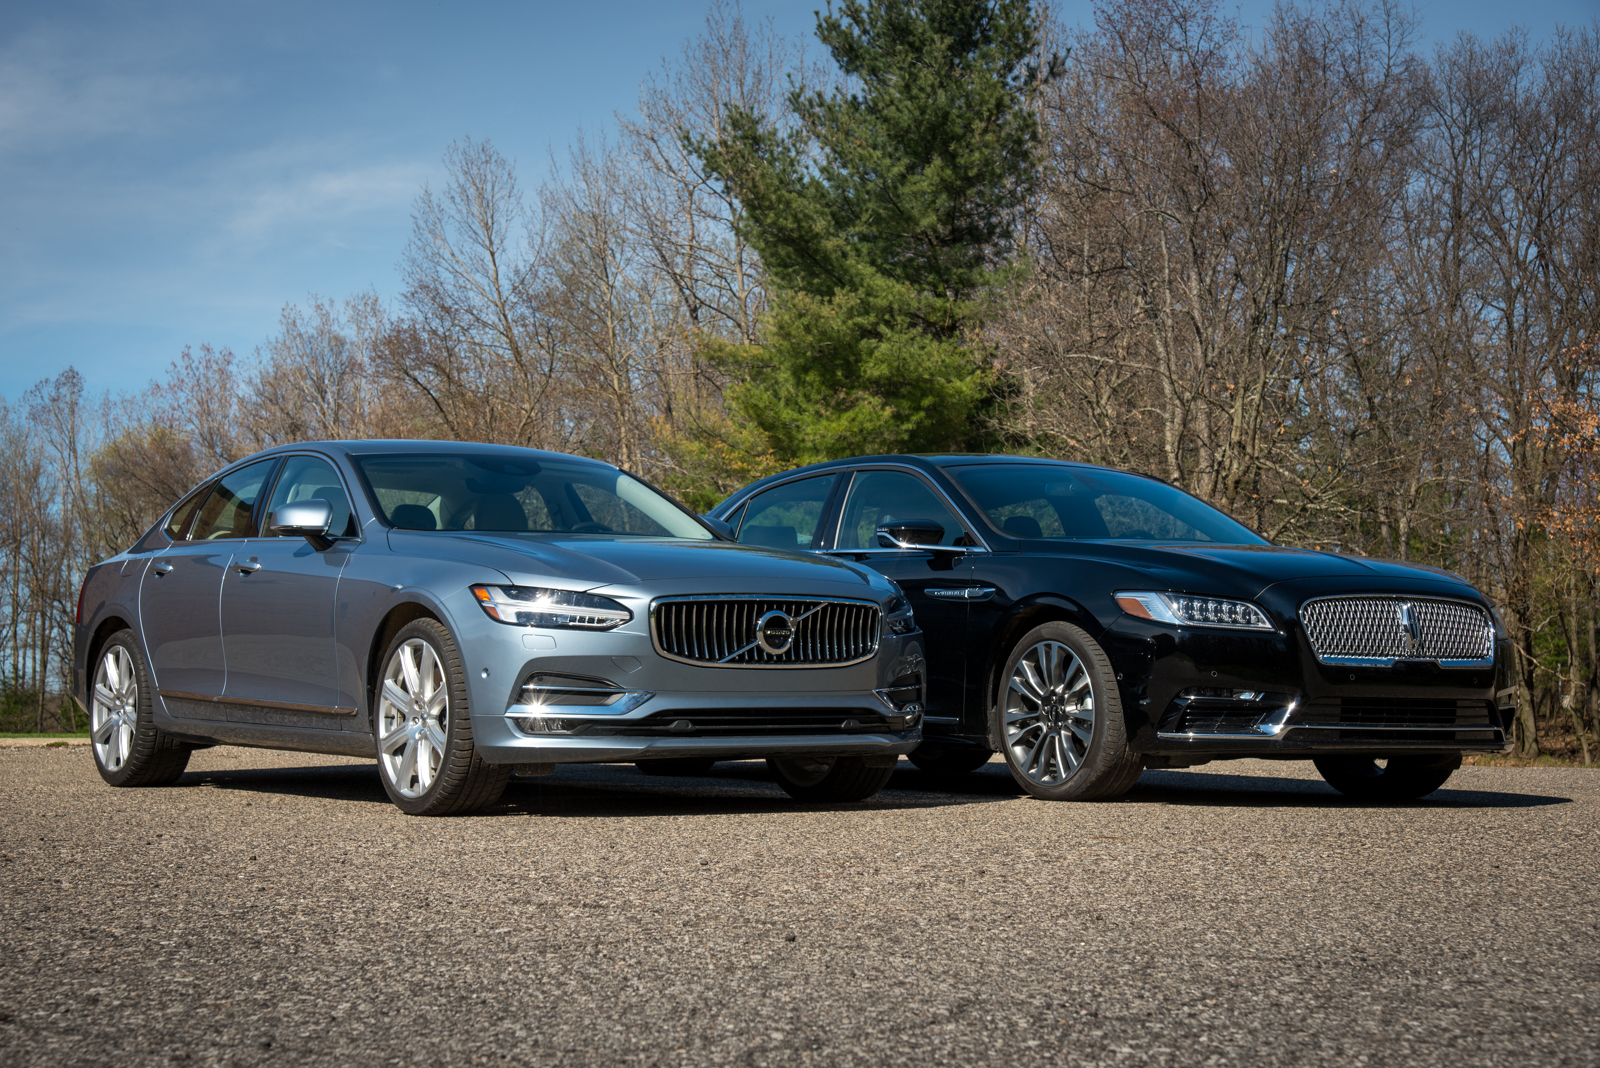 http://www.autoguide.com/blog/wp-content/gallery/2017-lincoln-continental-vs-2017-volvo-s90-5-10-2017/2017-Lincoln-Continental-Reserve-And-2017-Volvo-S90-Inscription-Group-Shot-03.jpg